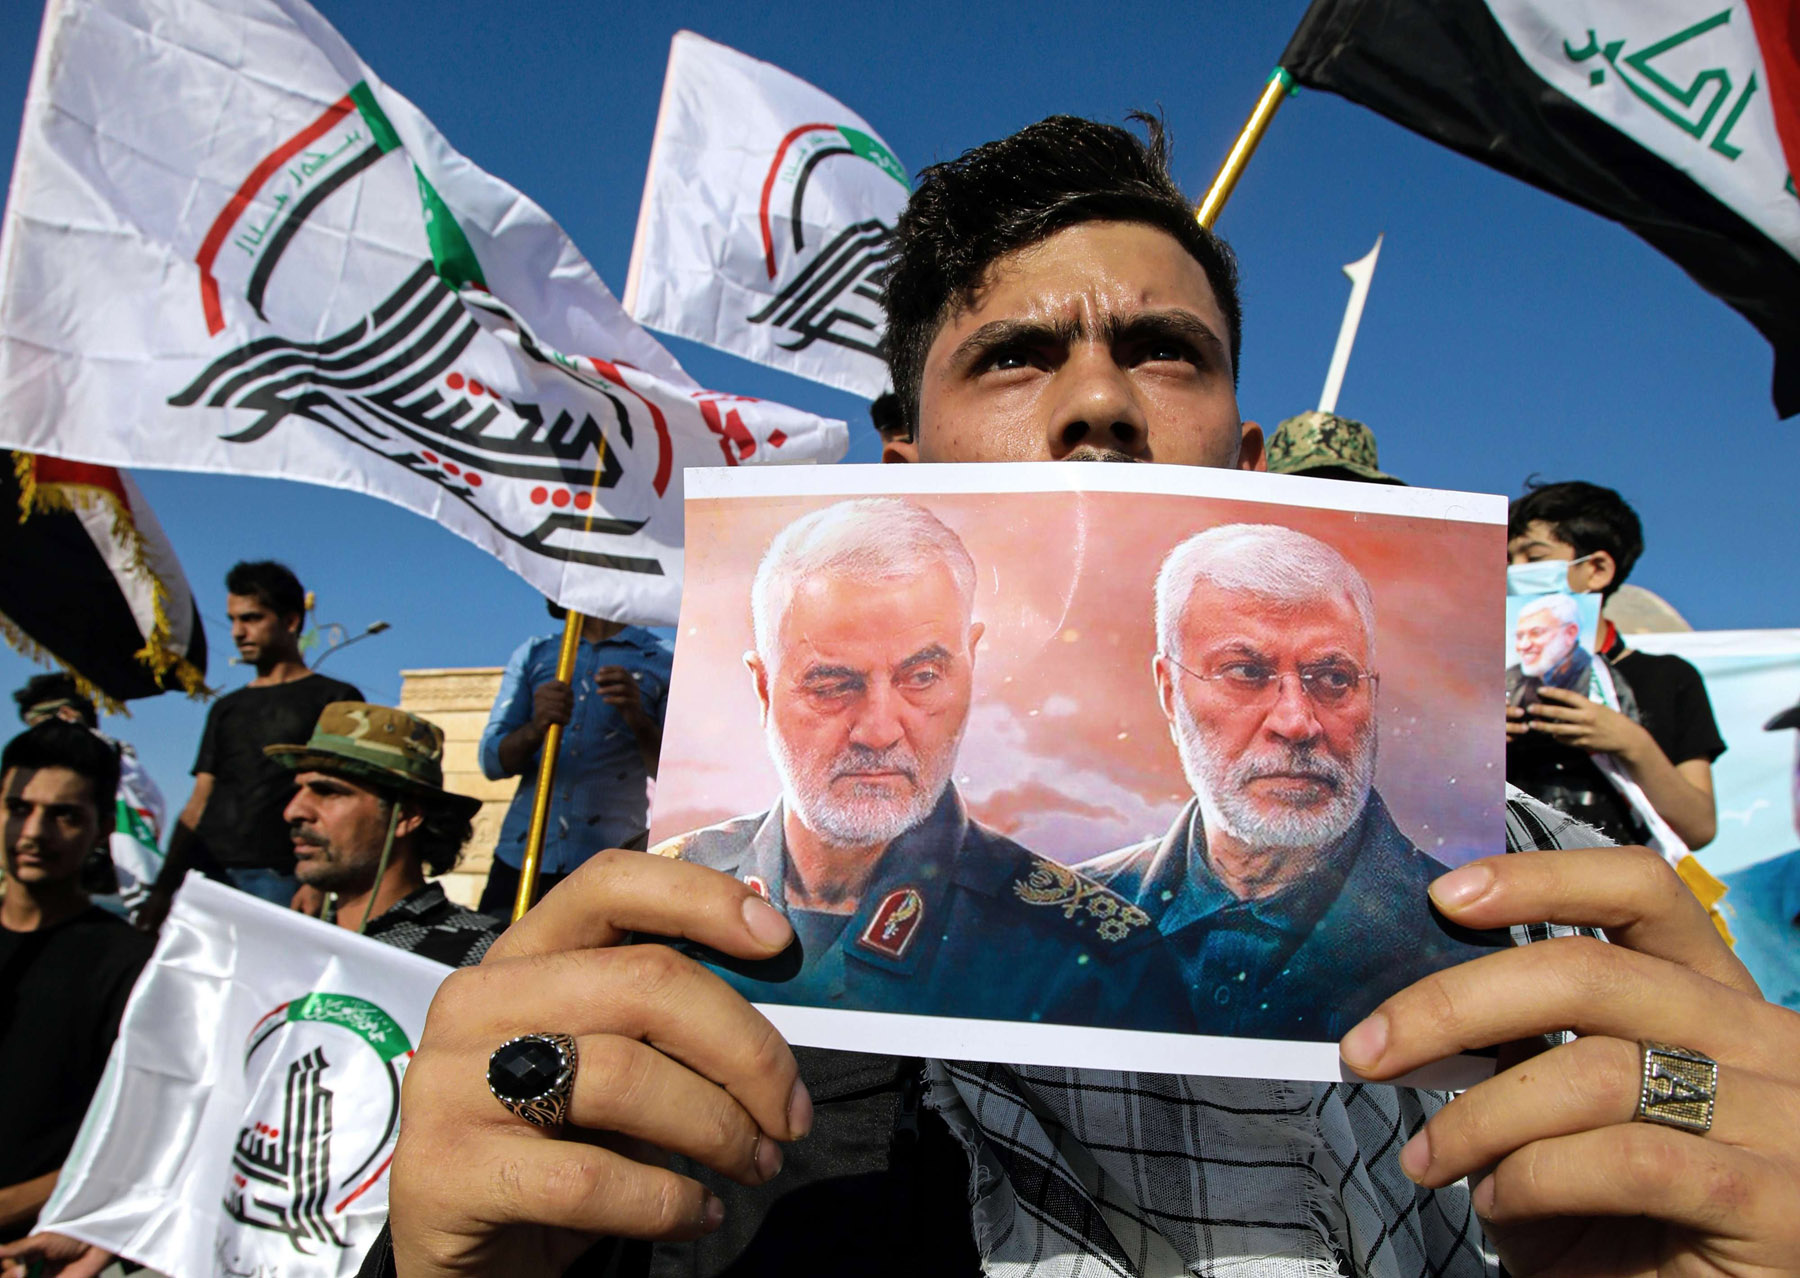 A supporter of pro-Iran militias holds a poster of Iranian General Qassem Soleimani and Shia commander Abu Mahdi al-Muhandis during a protest in Basra, Iraq. (AP)